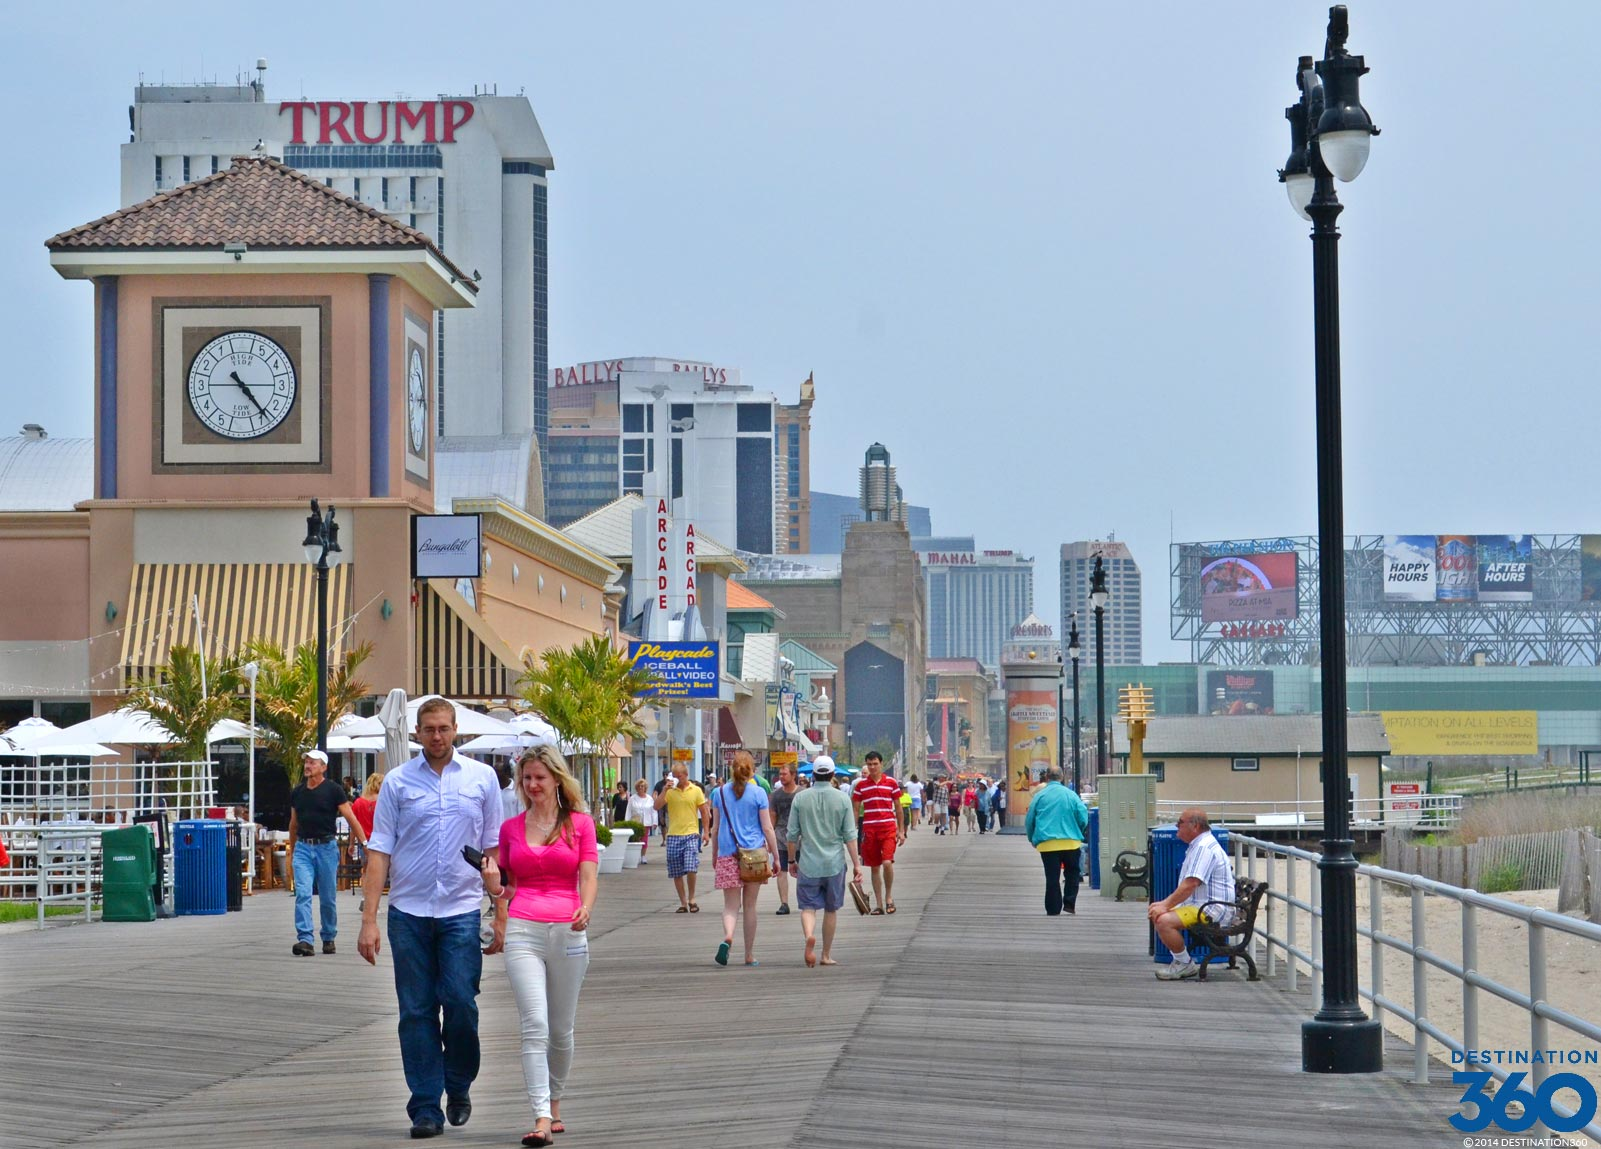 Boardwalk Hotels